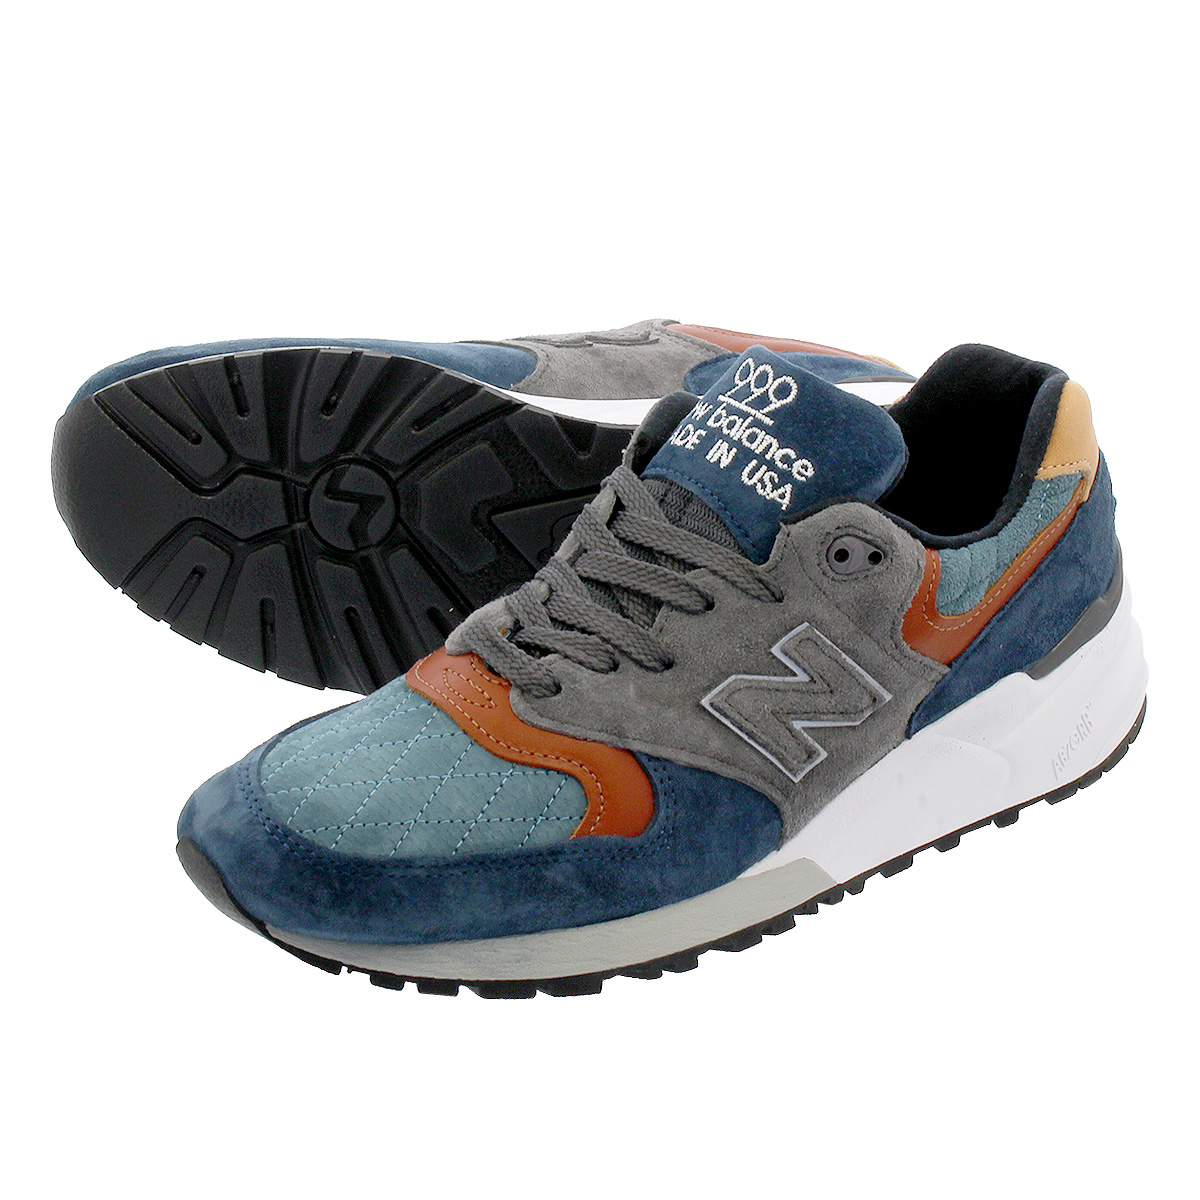 8c1637a700504 LOWTEX PLUS: NEW BALANCE M999JTC New Balance M 999 JTC BLUE/GREY | Rakuten  Global Market